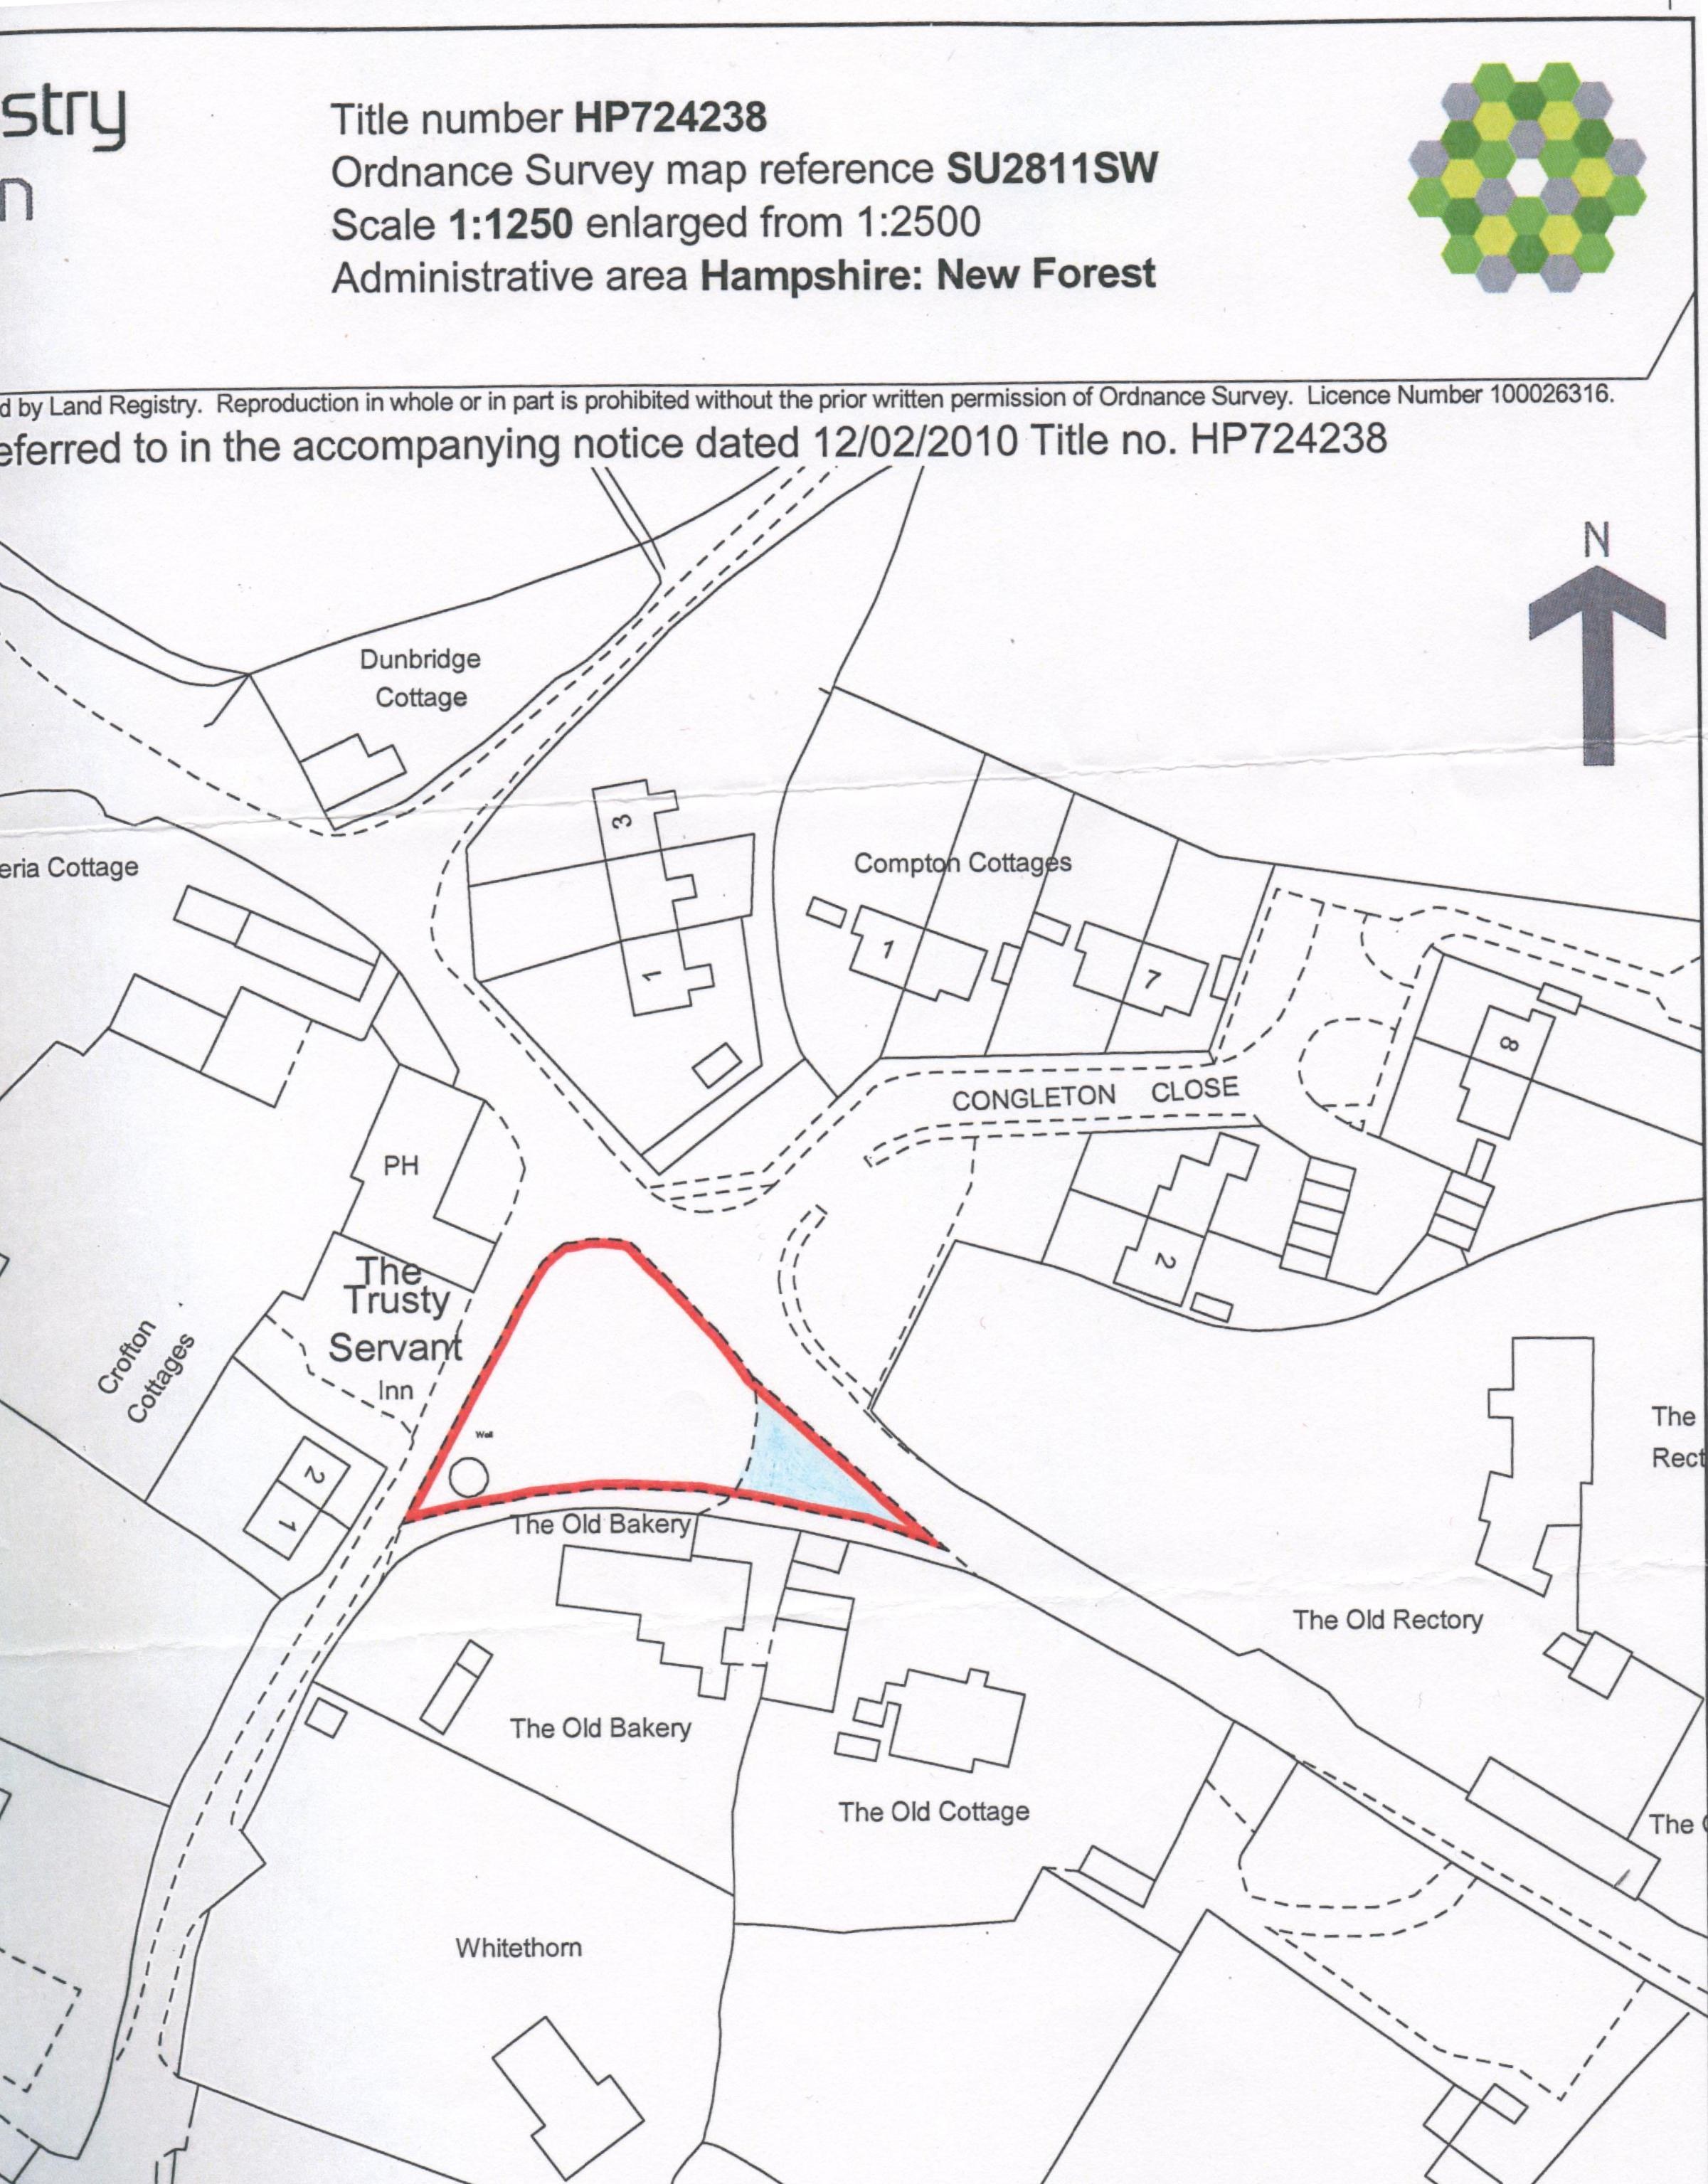 Land owned by PC - Village Green